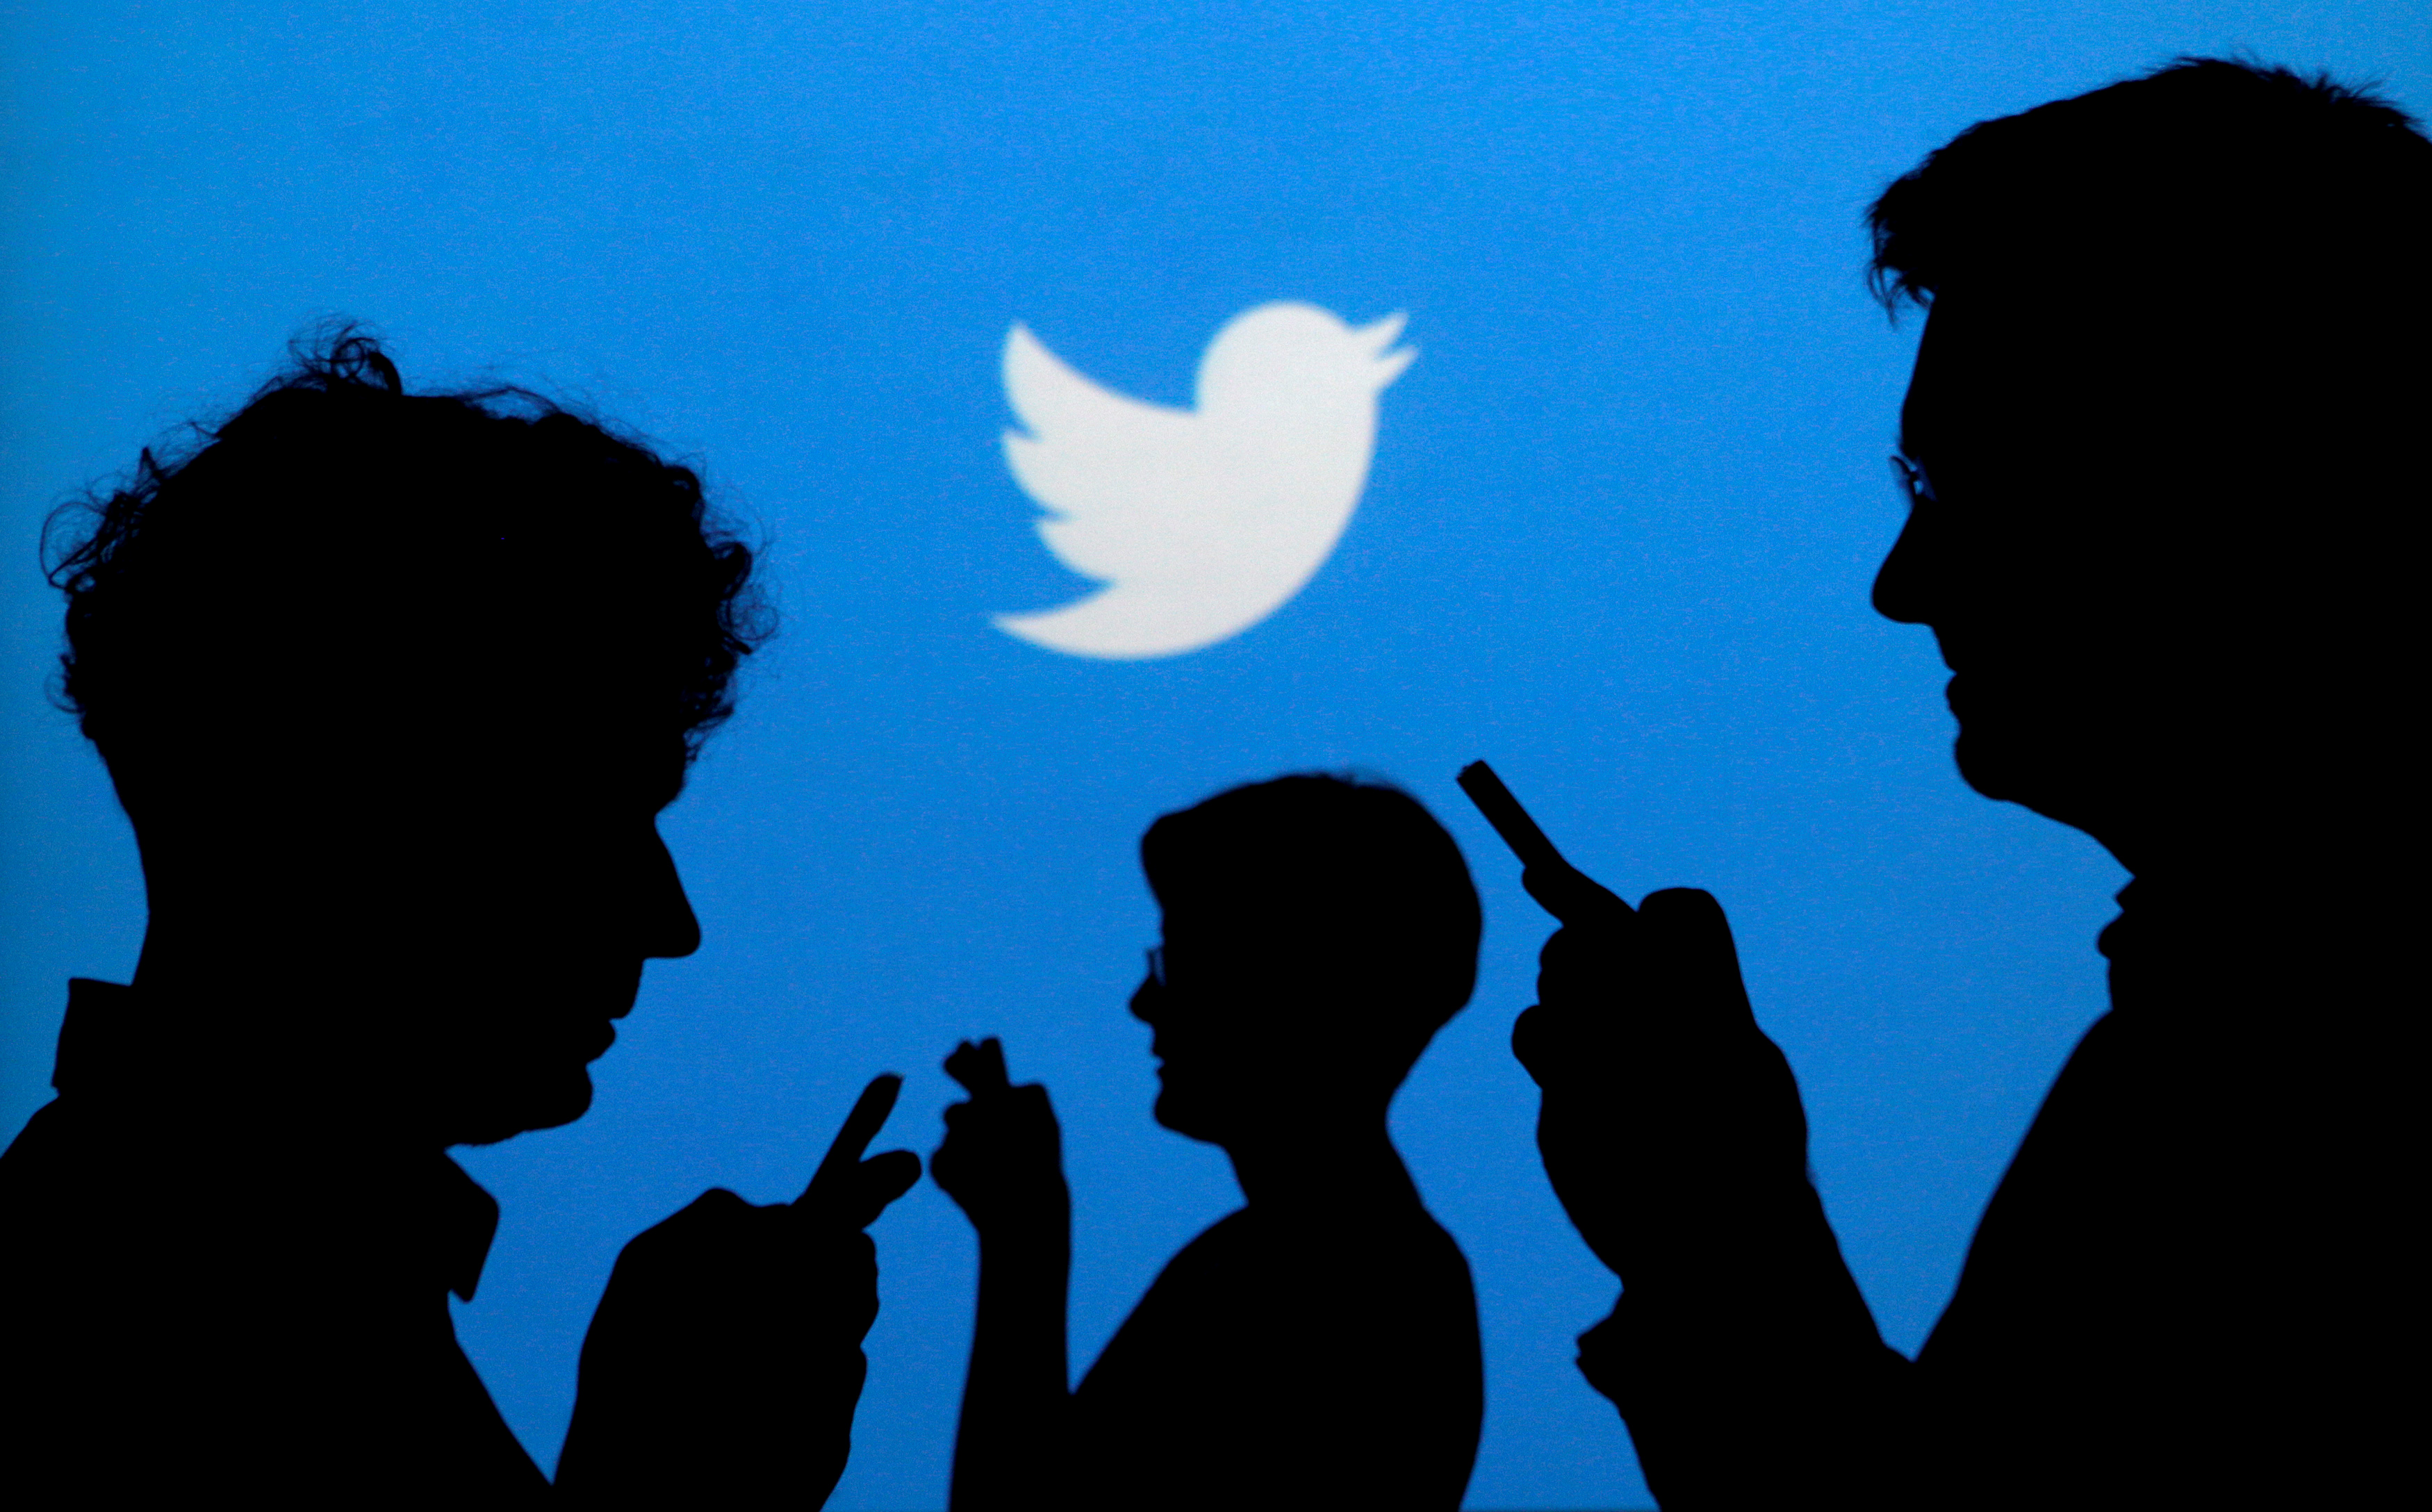 Twitter reverts to old retweet function after U.S. election   Reuters